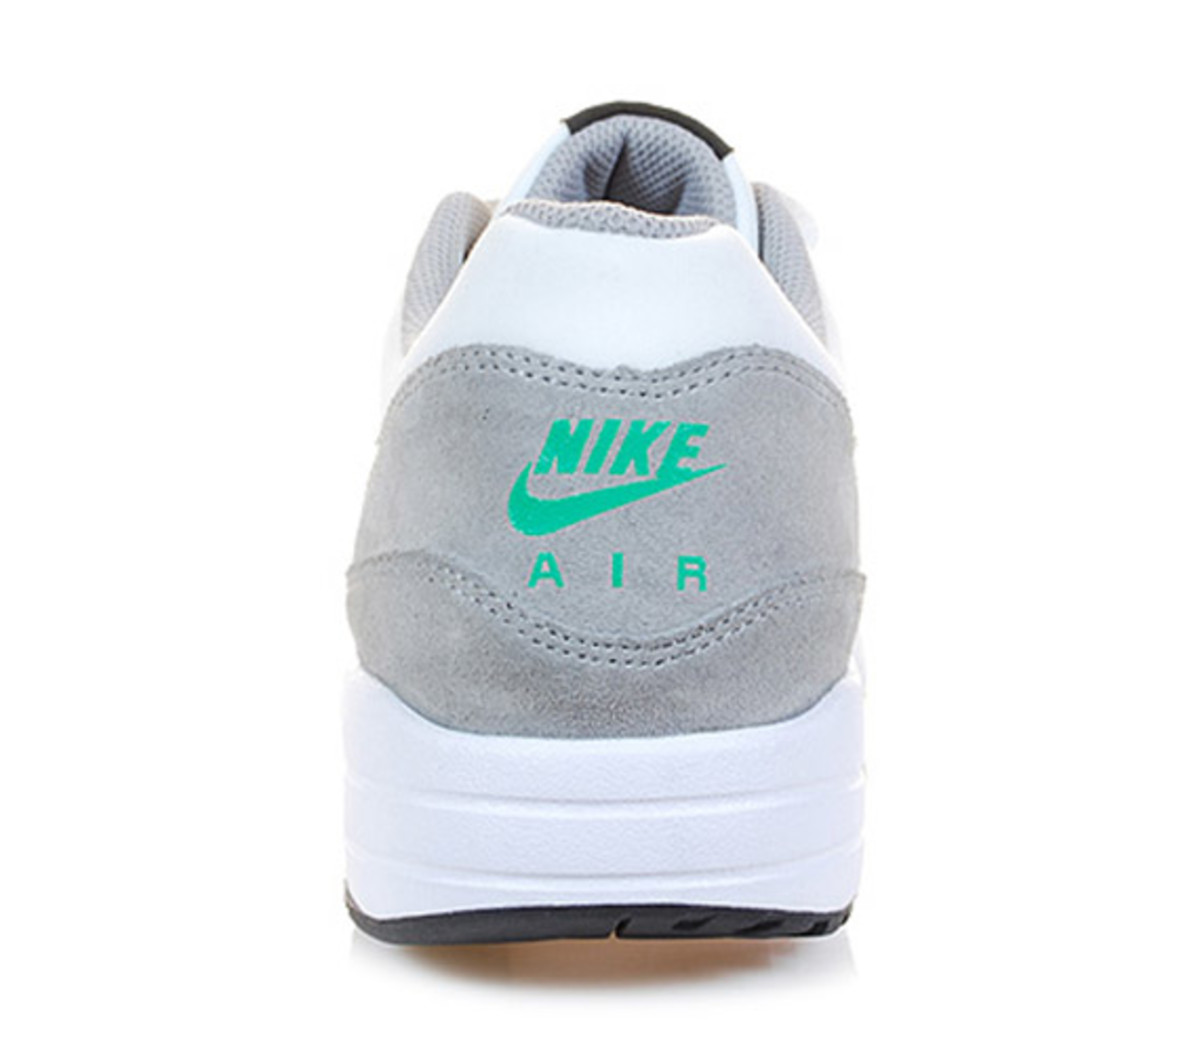 nike_air_maxim_1_trainer_3